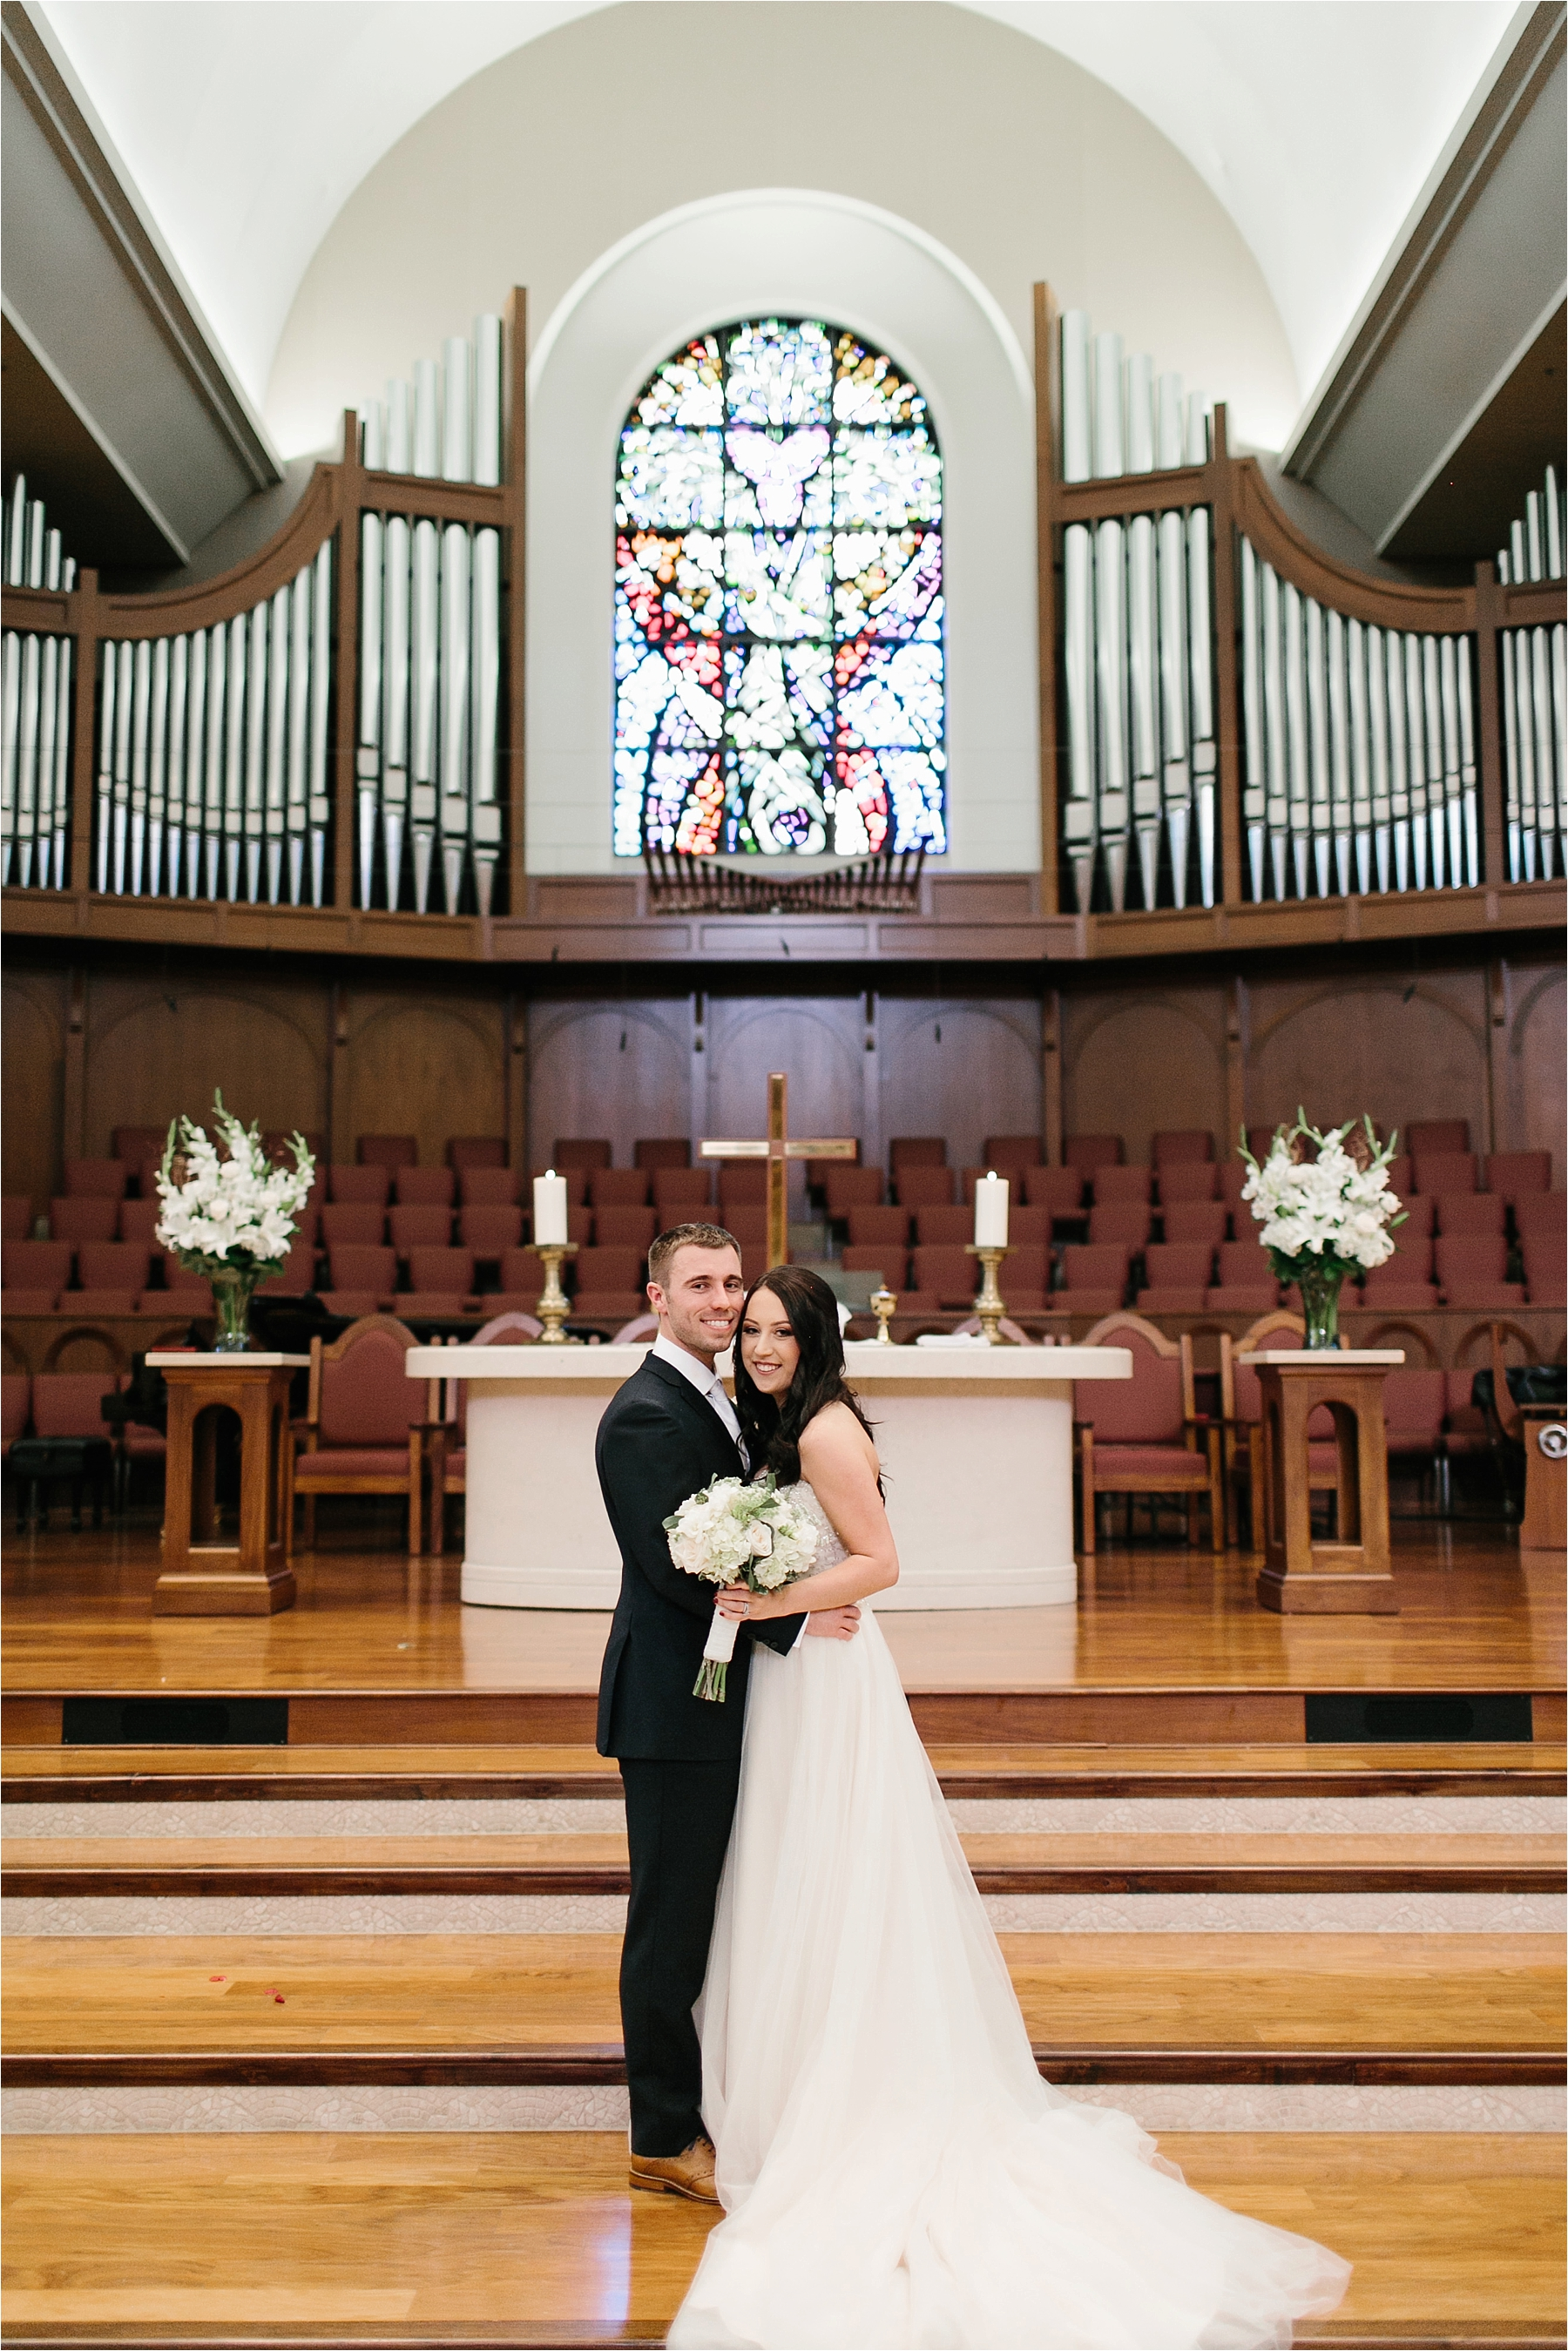 Chrissy + Zach __ The Windsor at Hebron Park Wedding by North Texas Wedding Photographer _ Rachel Meagan Photography __042